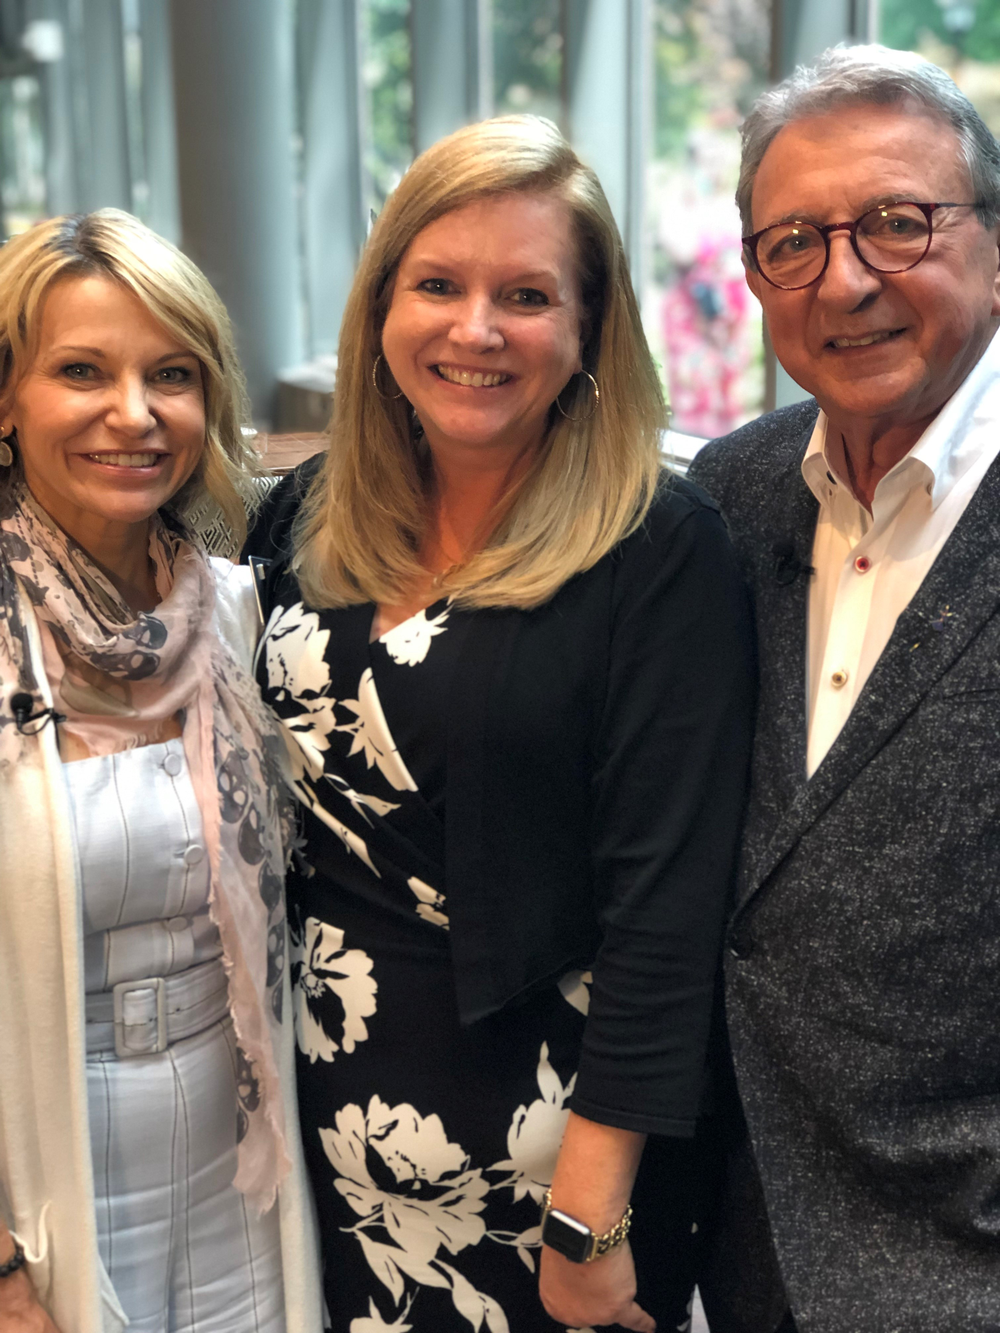 At the Data-Driven Summit, Debra Penzone and Charles Penzone were honored with the 2019 Salons of the Year Grand Prize Award from Salon Today's Stacey Soble (center) for their PENZONE Salon + Spa location in Dublin, Ohio.